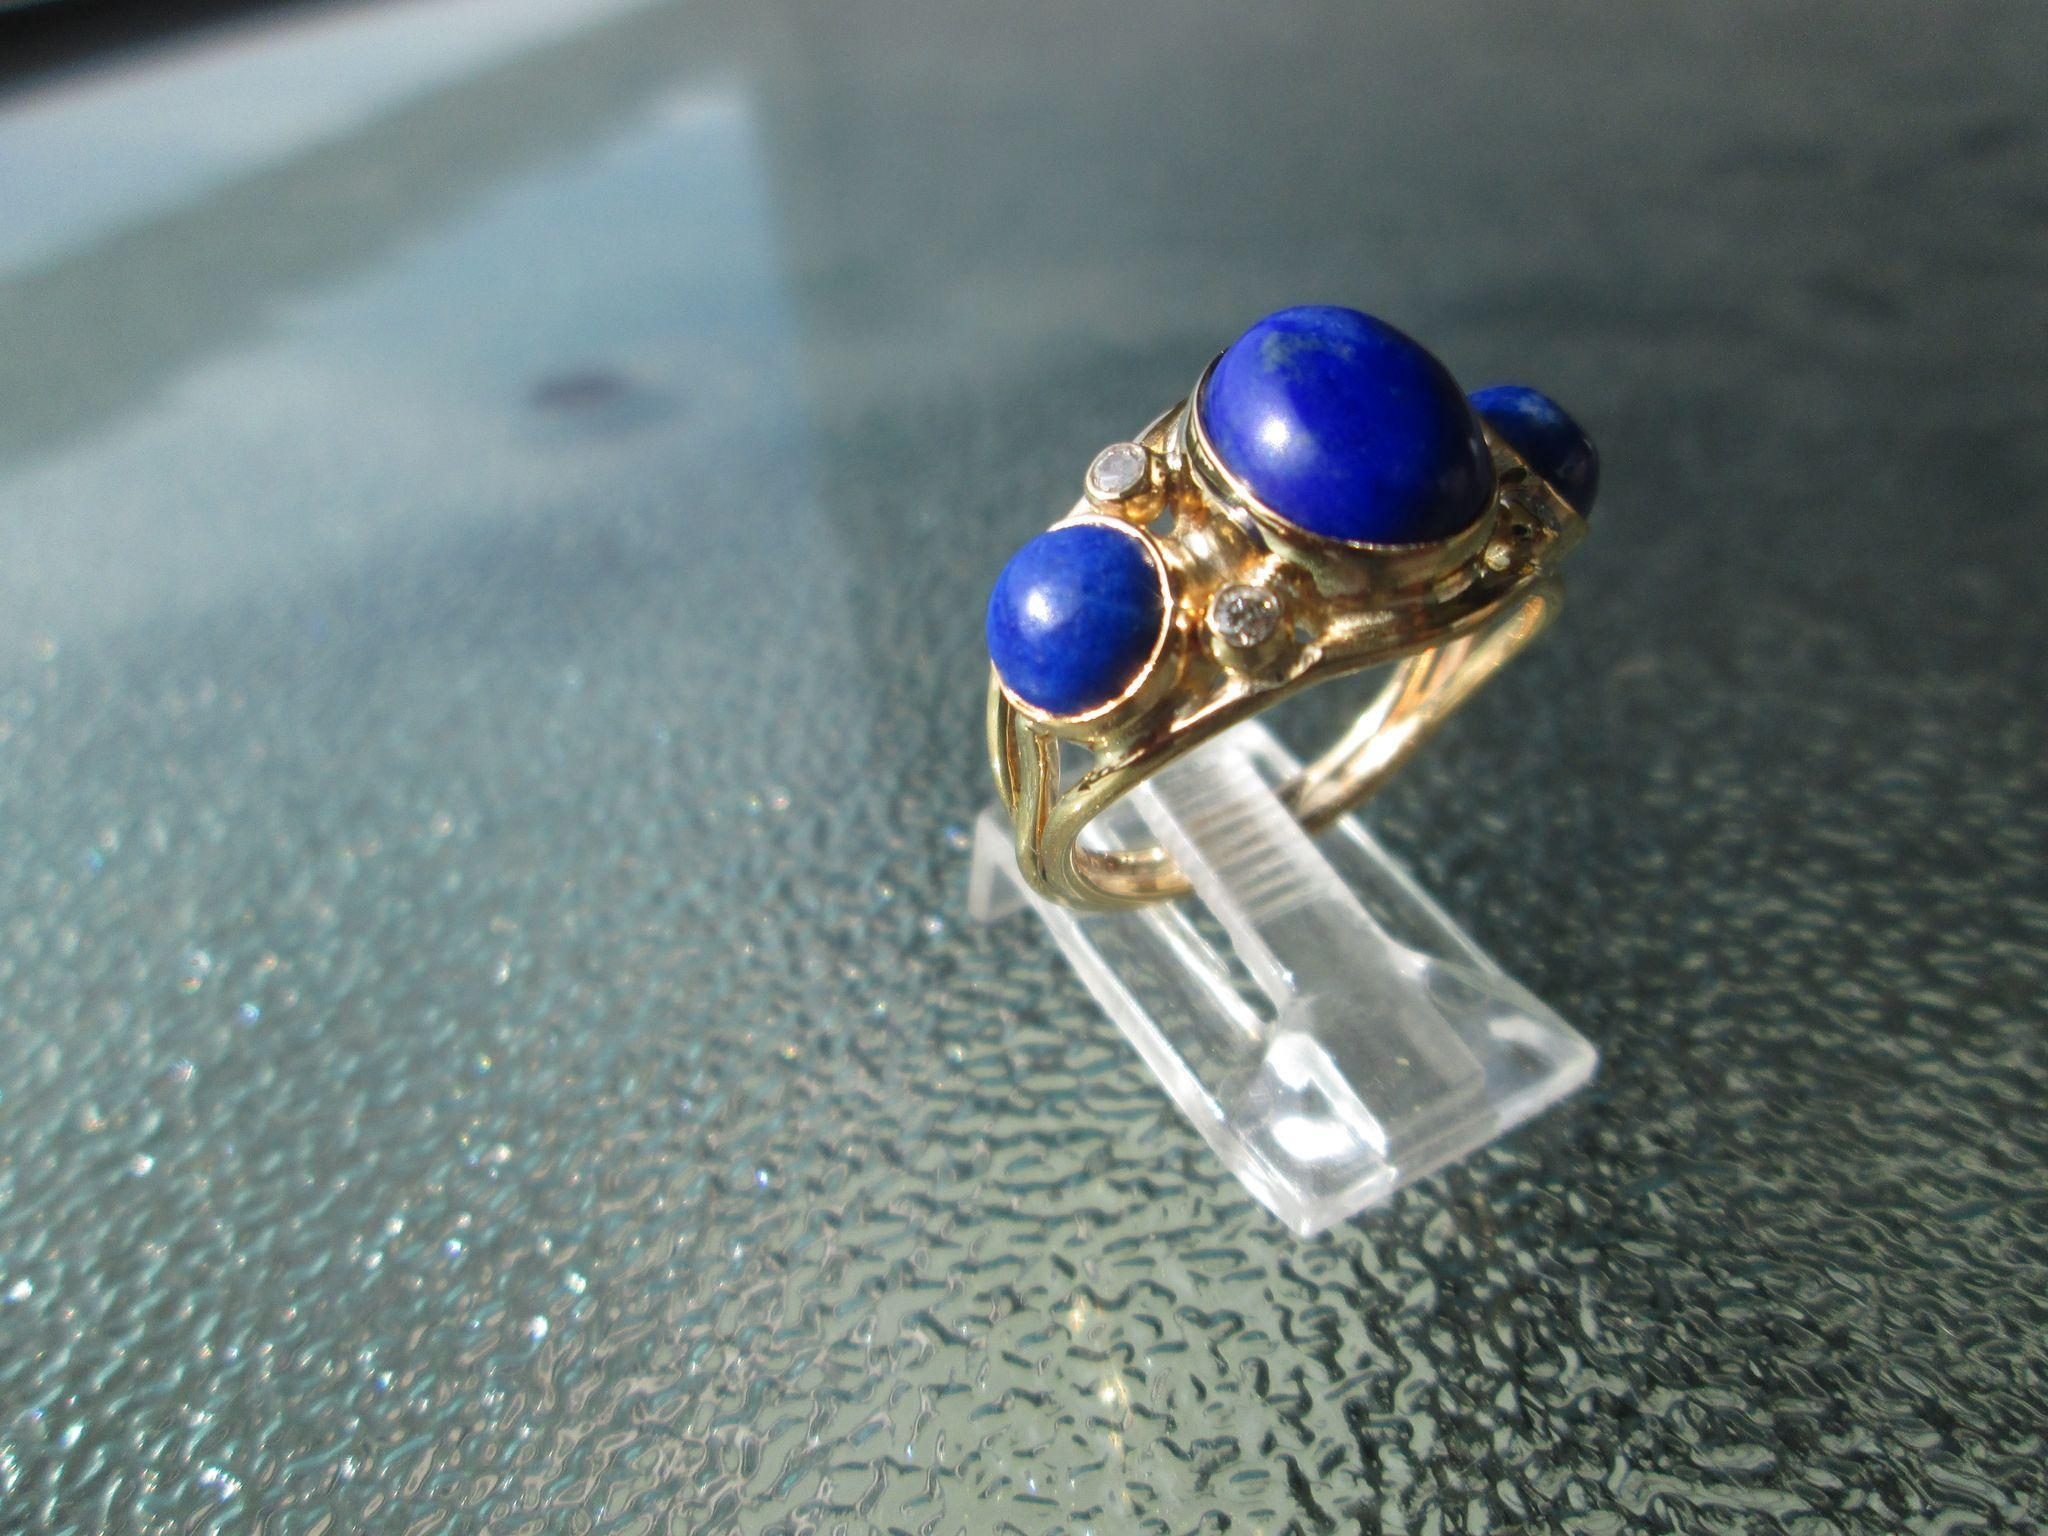 9kt Yellow Gold Oval and Round Triple Lapis Lazuli and Diamond Artisan Ladies Ring